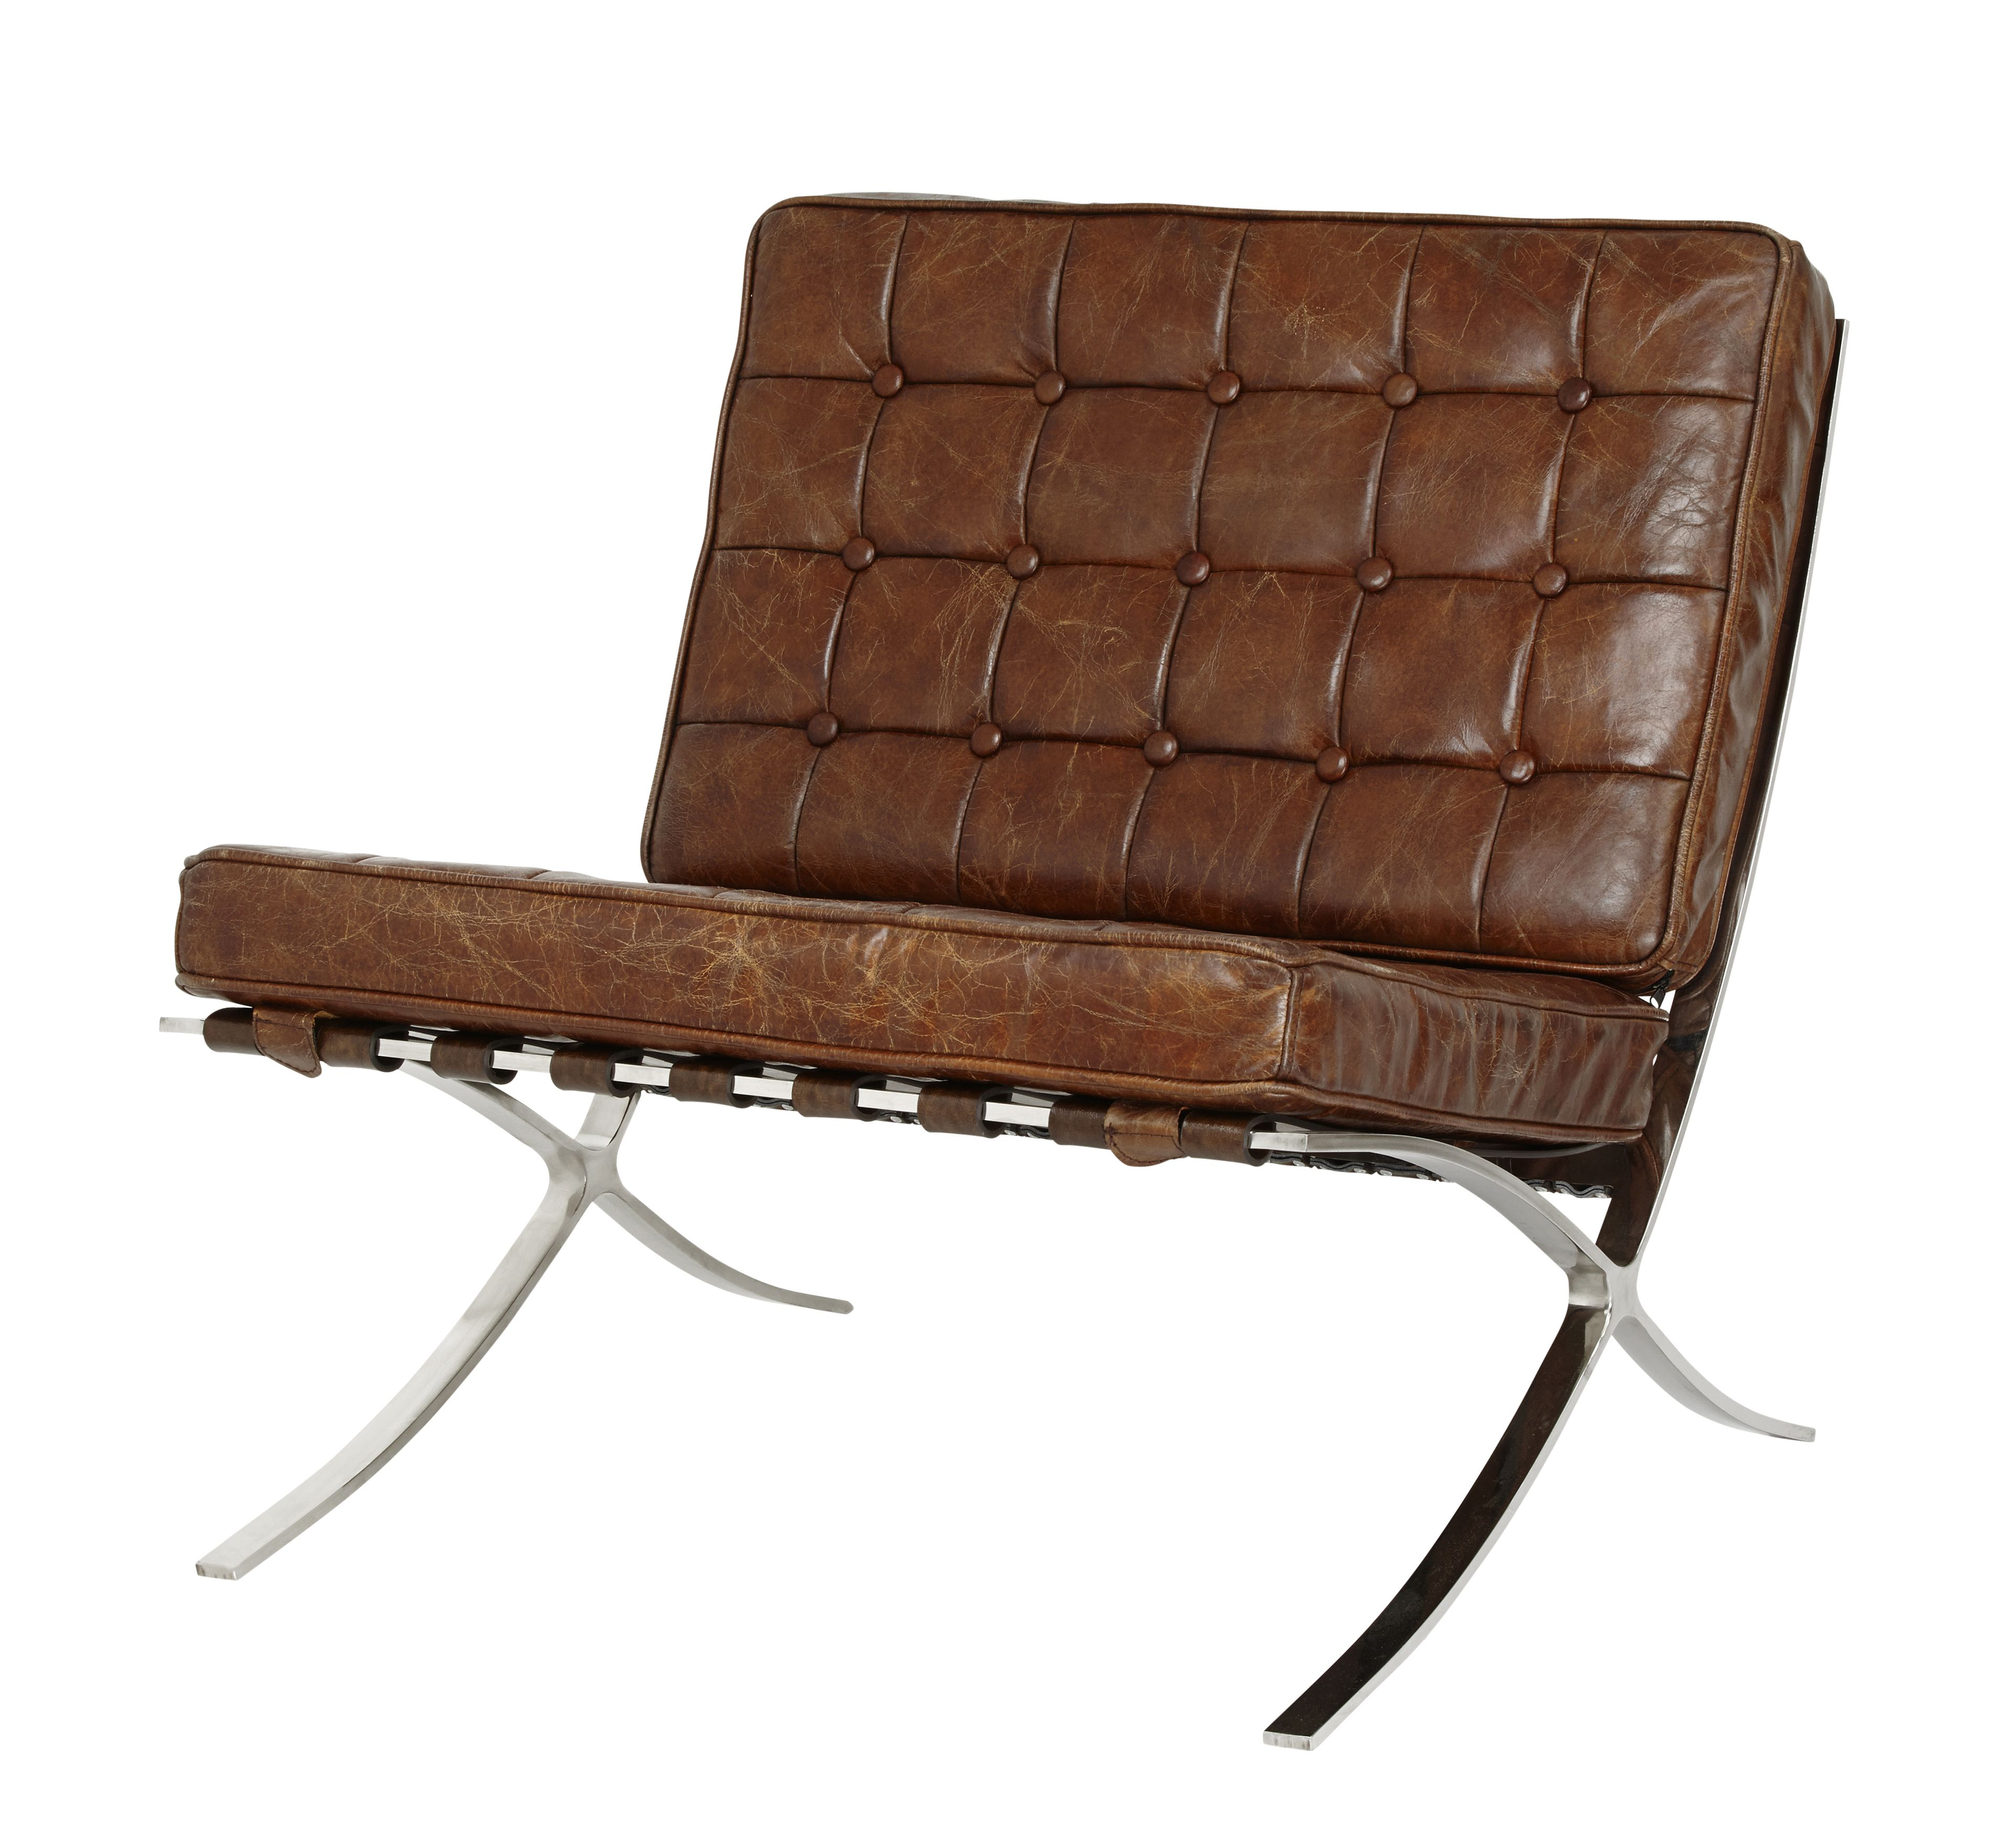 Leather chair from an eclectic collection of furniture and accessories at HomeSense #FashionYourHome  sc 1 st  Pinterest & Leather chair from an eclectic collection of furniture and ...